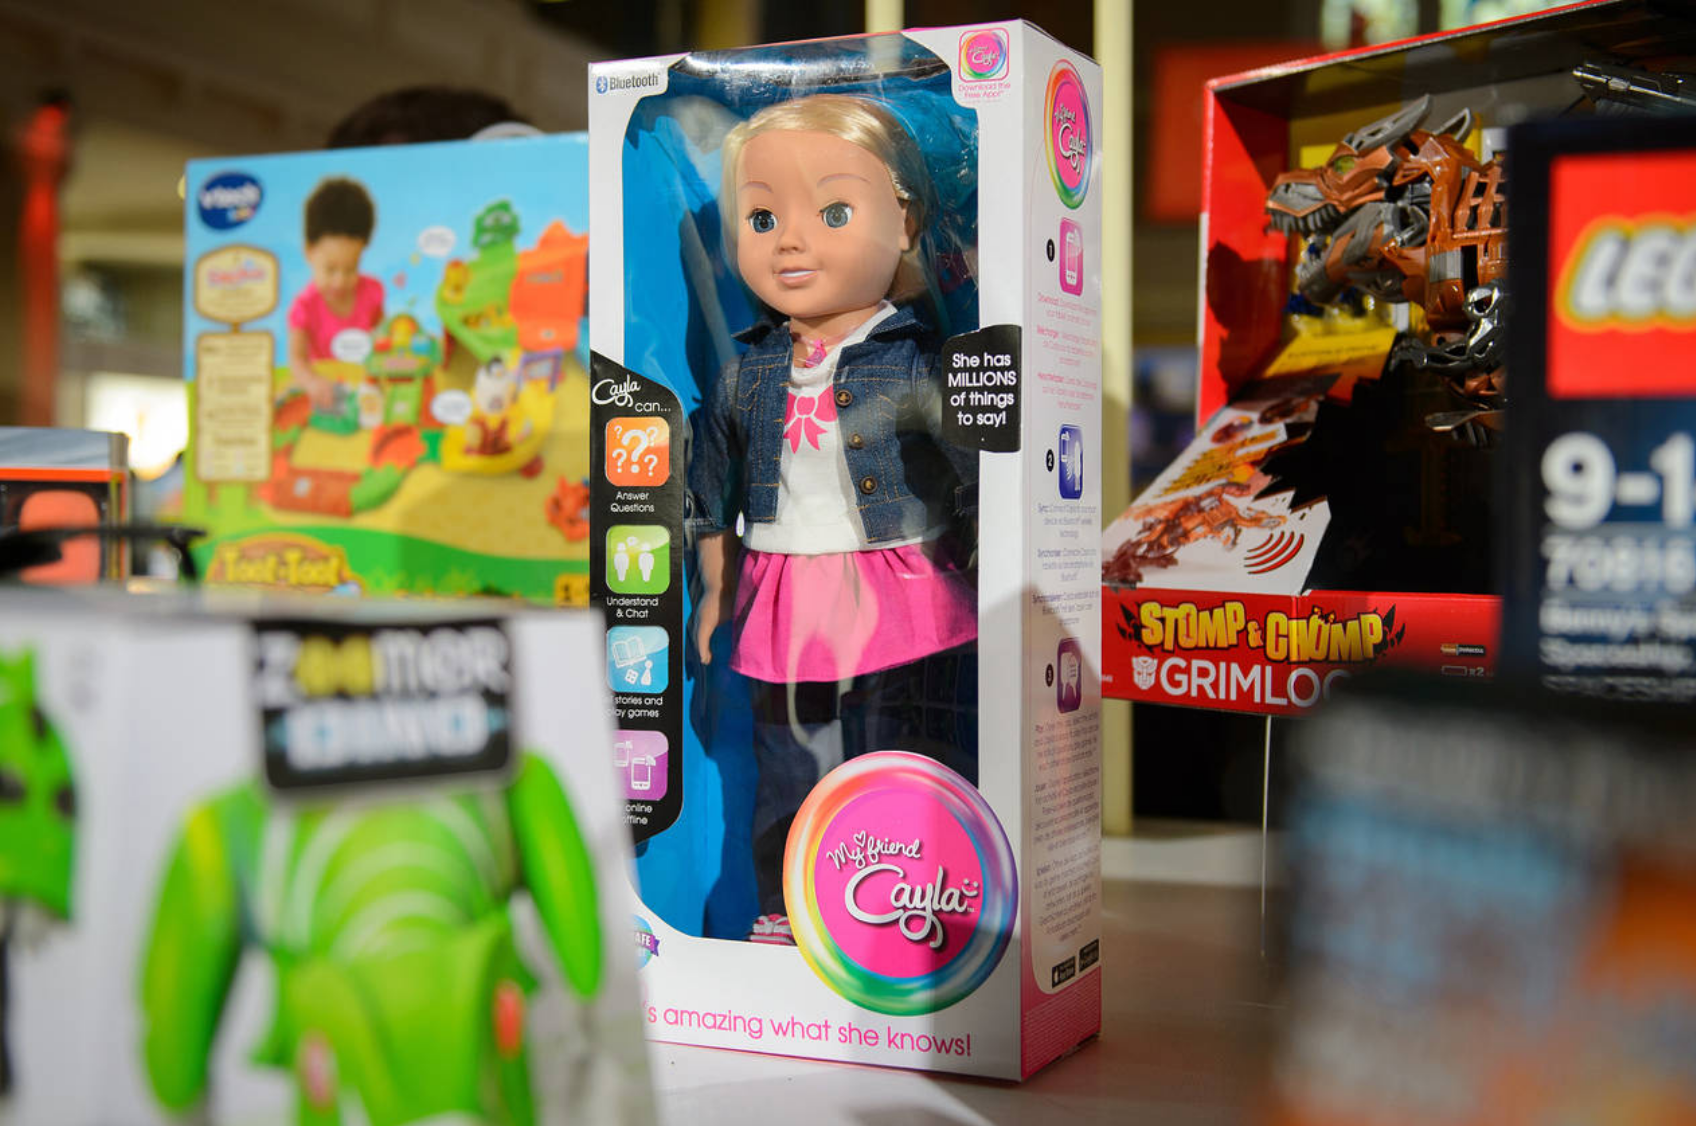 Is Cayla The Toy Doll A Domestic Spy?